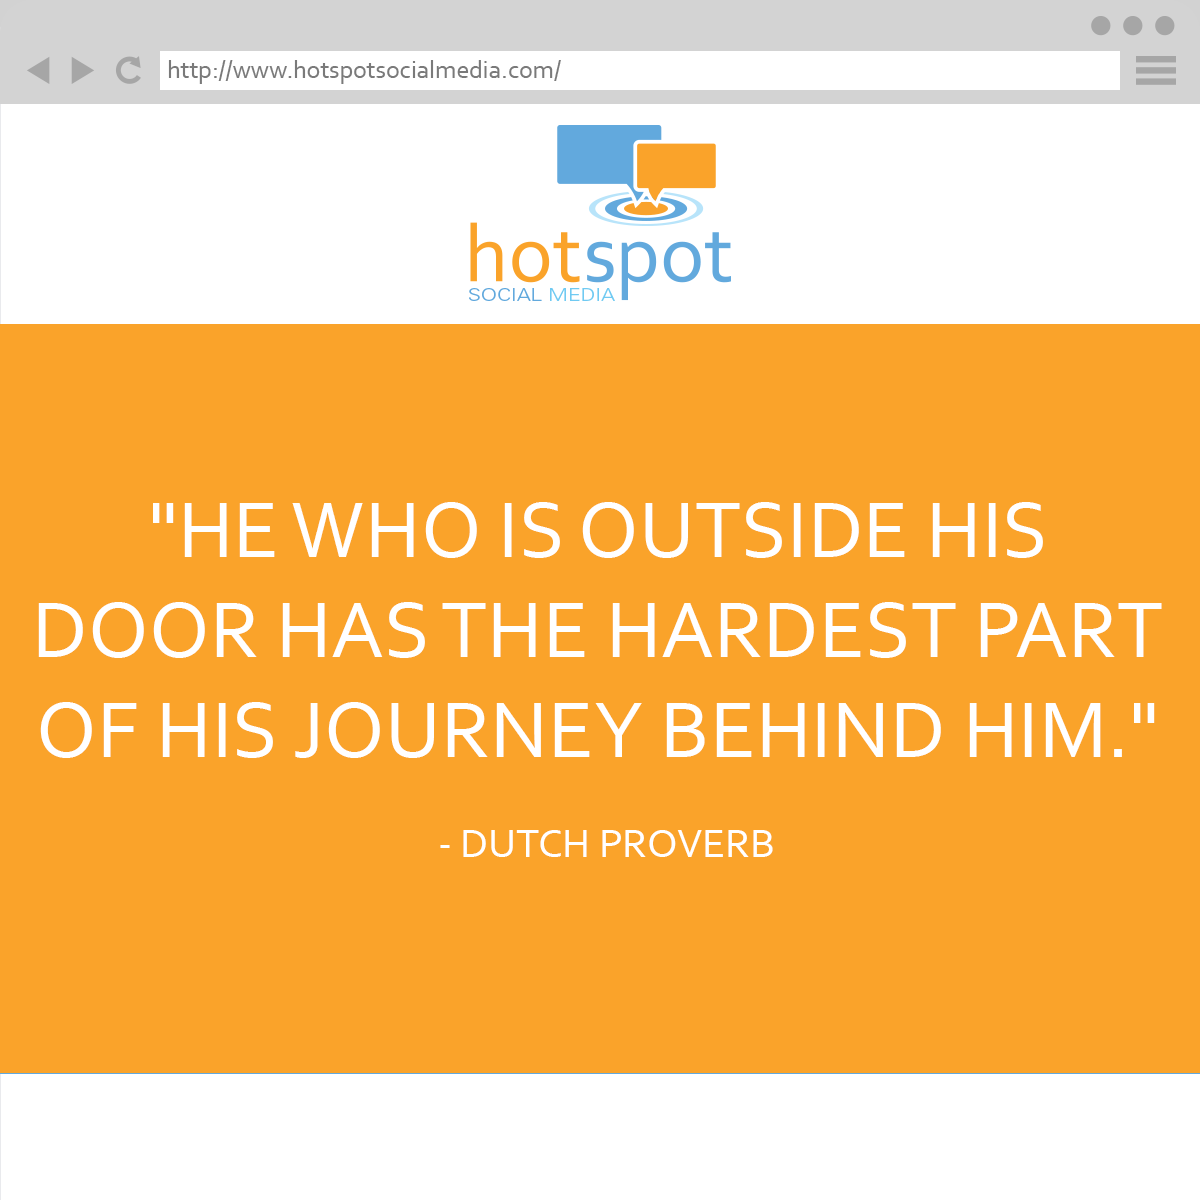 """He who is outside his door has the hardest part of his journey behind him."""" -- Dutch proverb #Quote #HotSpotSocMed"""